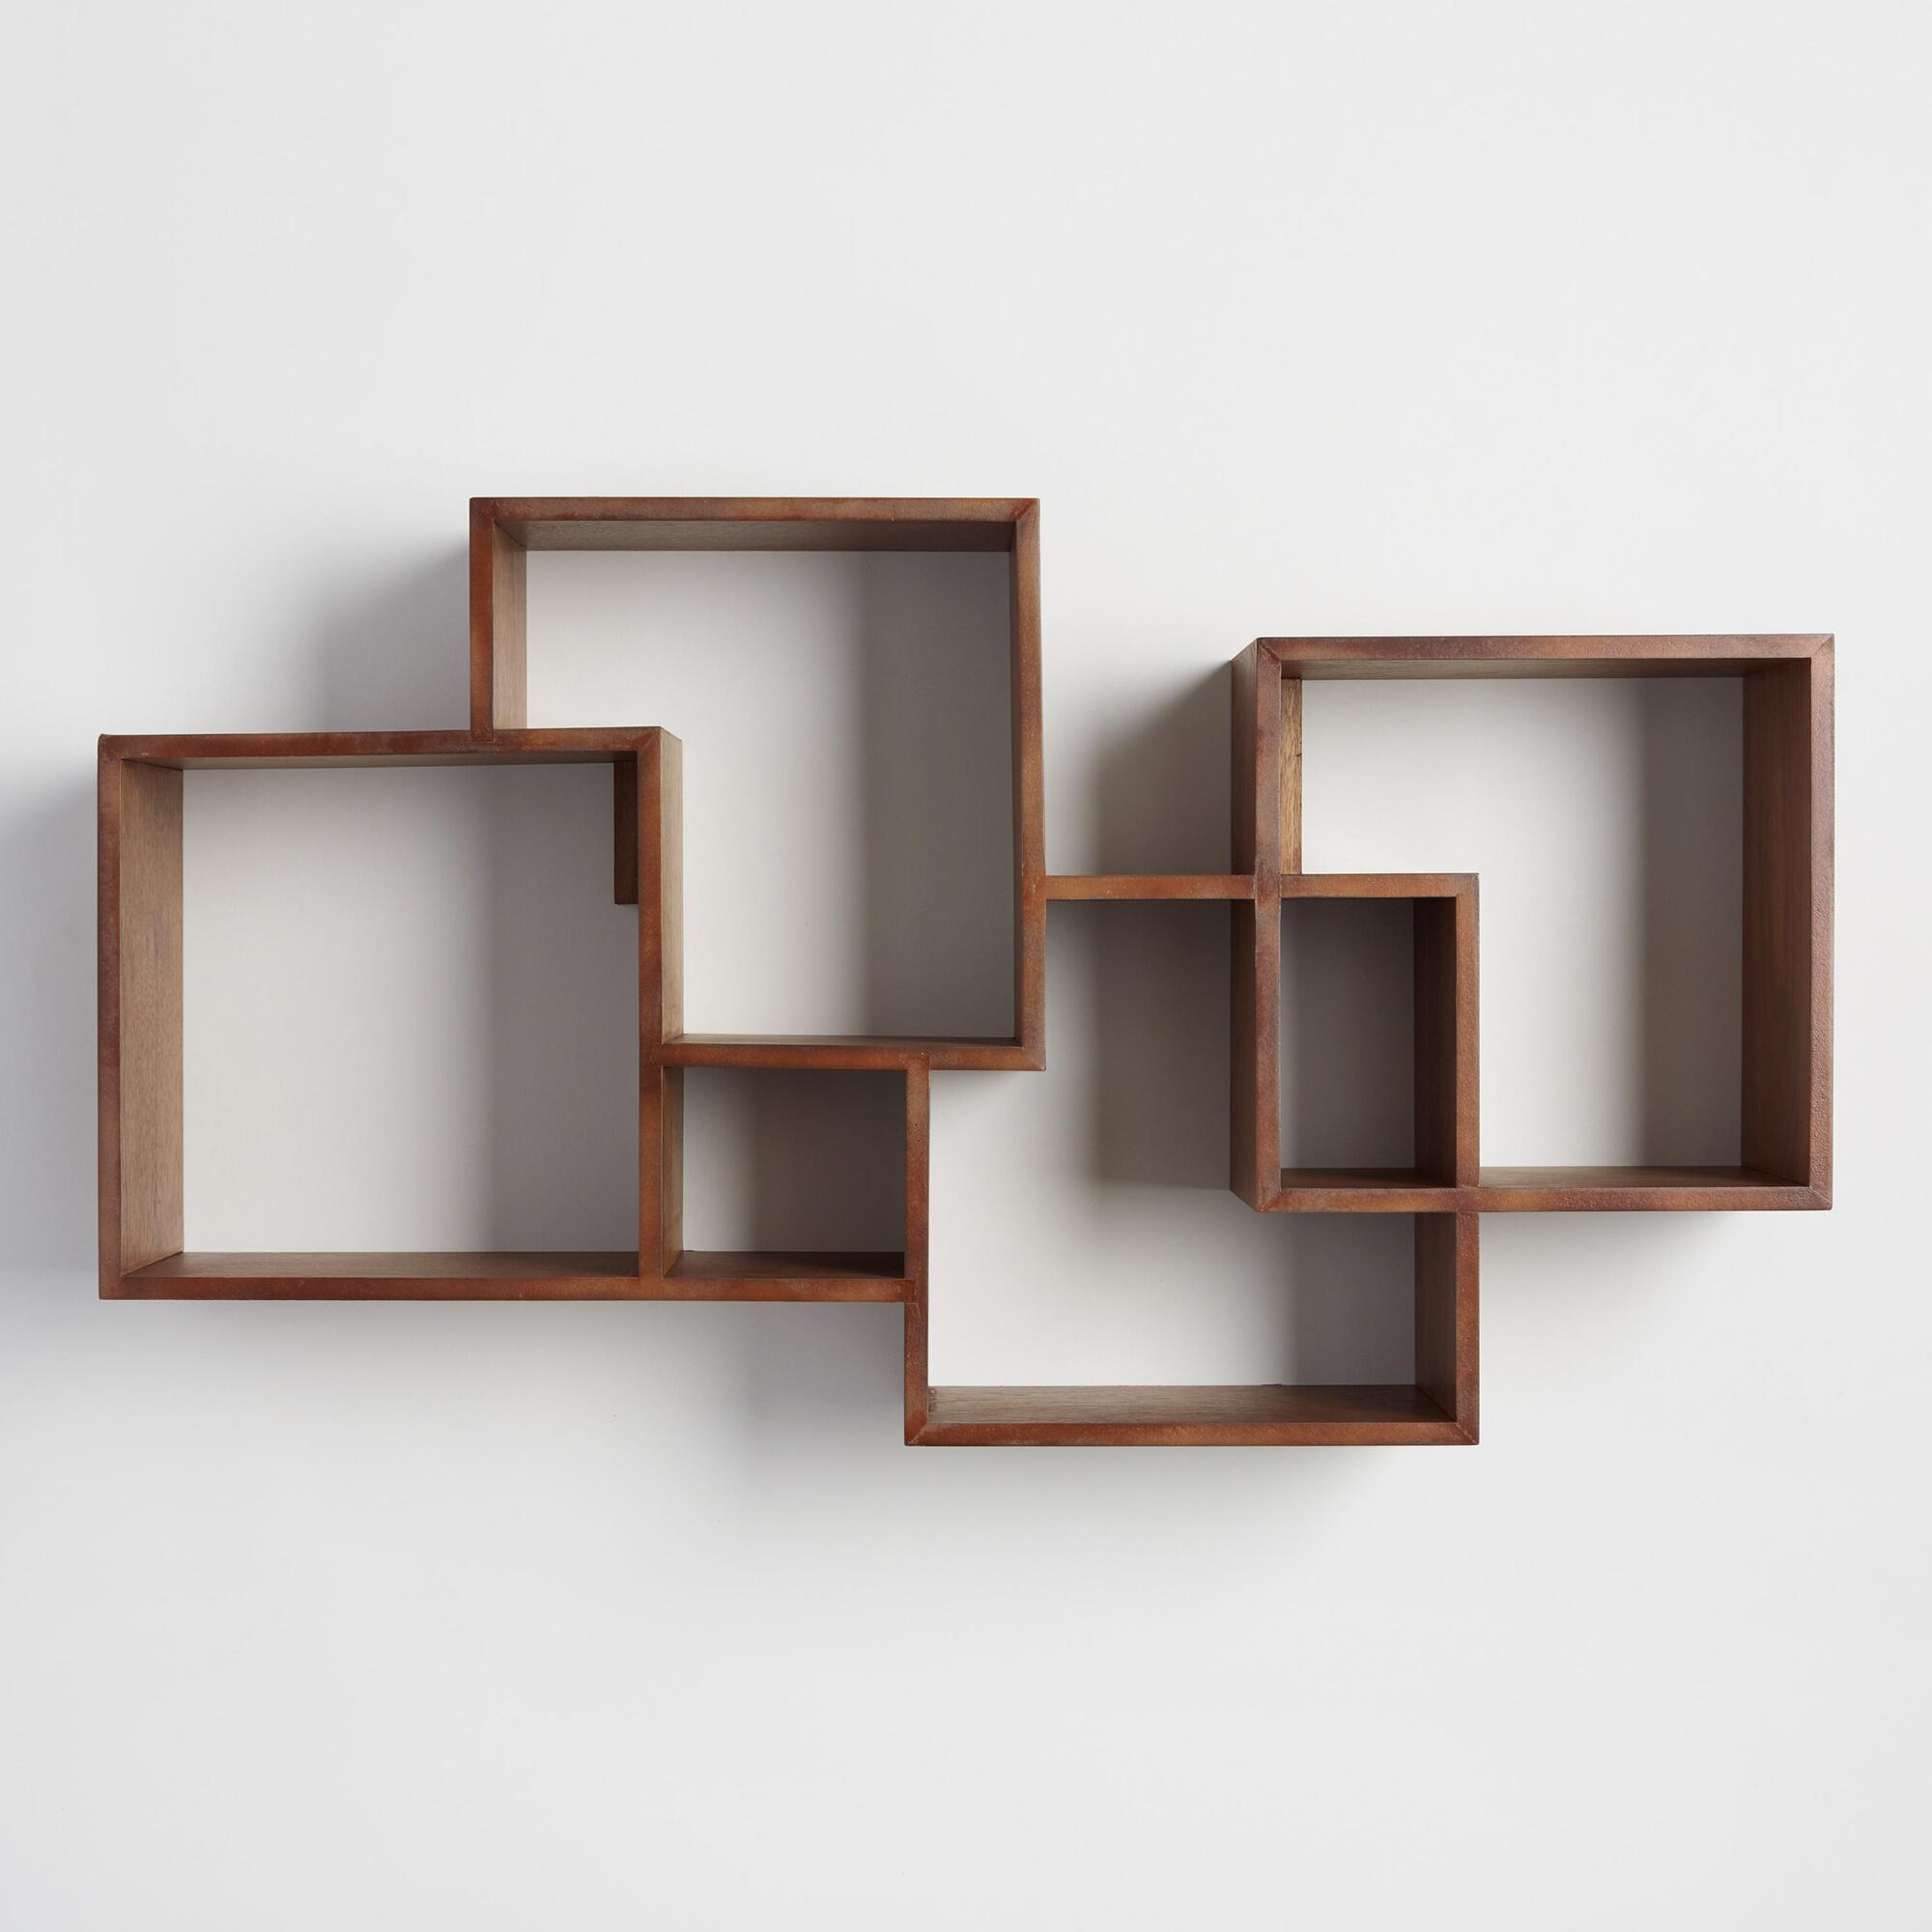 Featuring four cubbies and two smaller niches, this artistic wall-mounted  wood shelf with